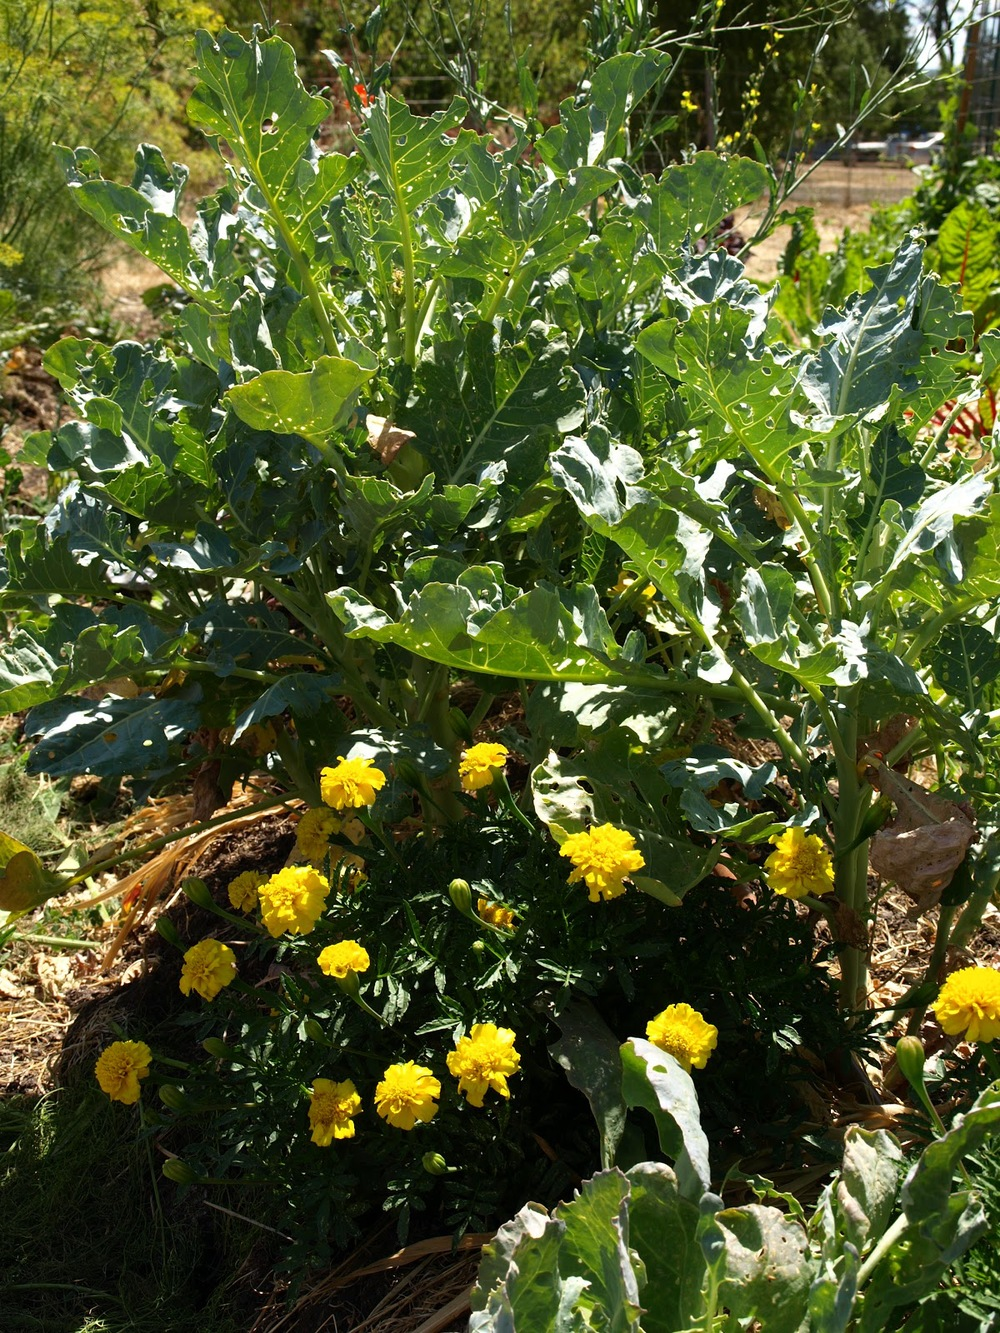 Broccoli and marigolds